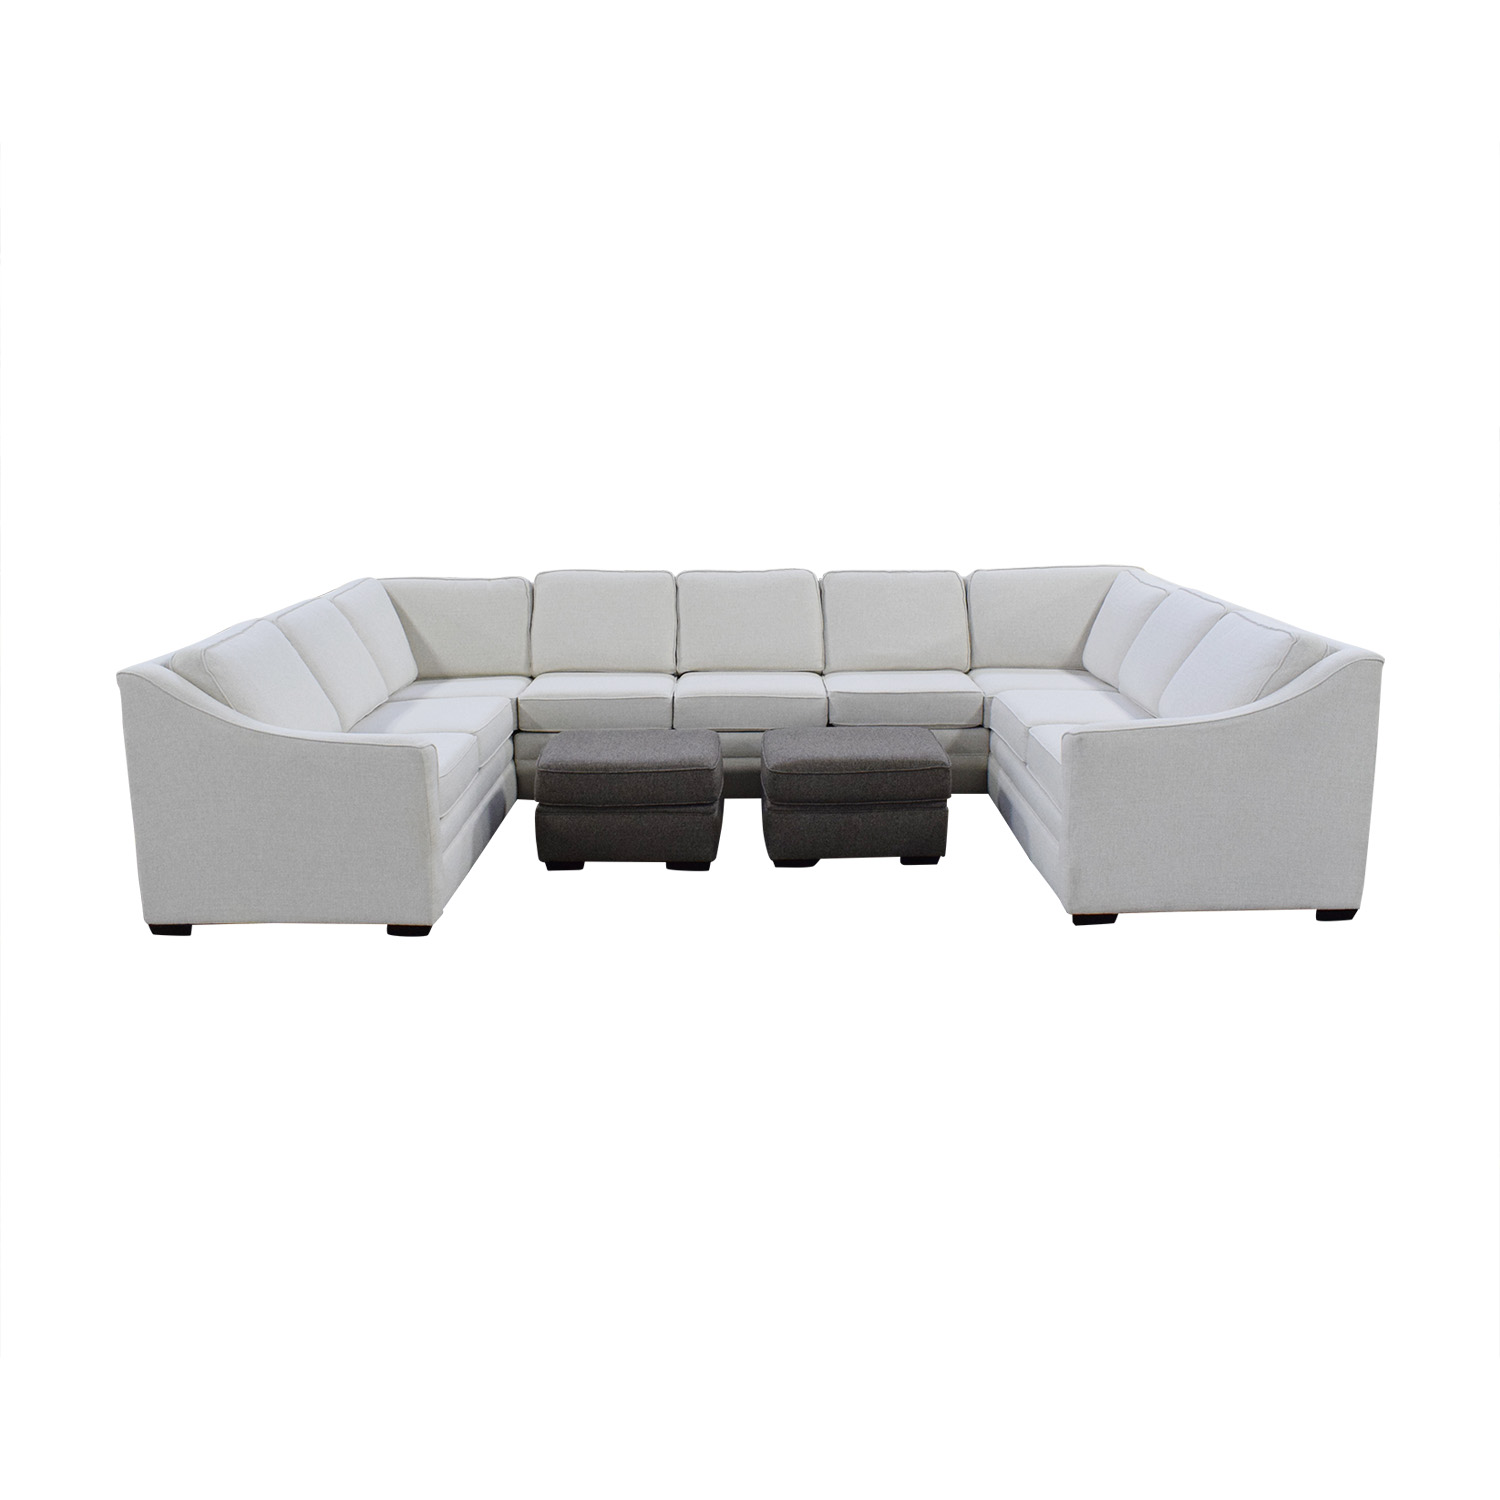 England Furniture England Furniture U Shaped Sectional Sofa on sale